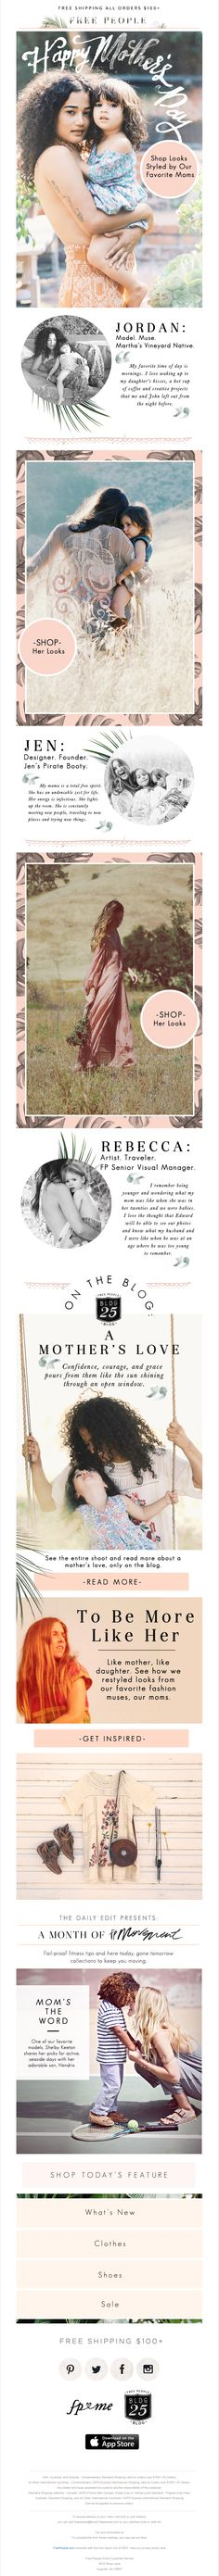 Free People email for Mother's Day; SL: Re: Mom; Email sent: May 7, 2015 5:08 pm